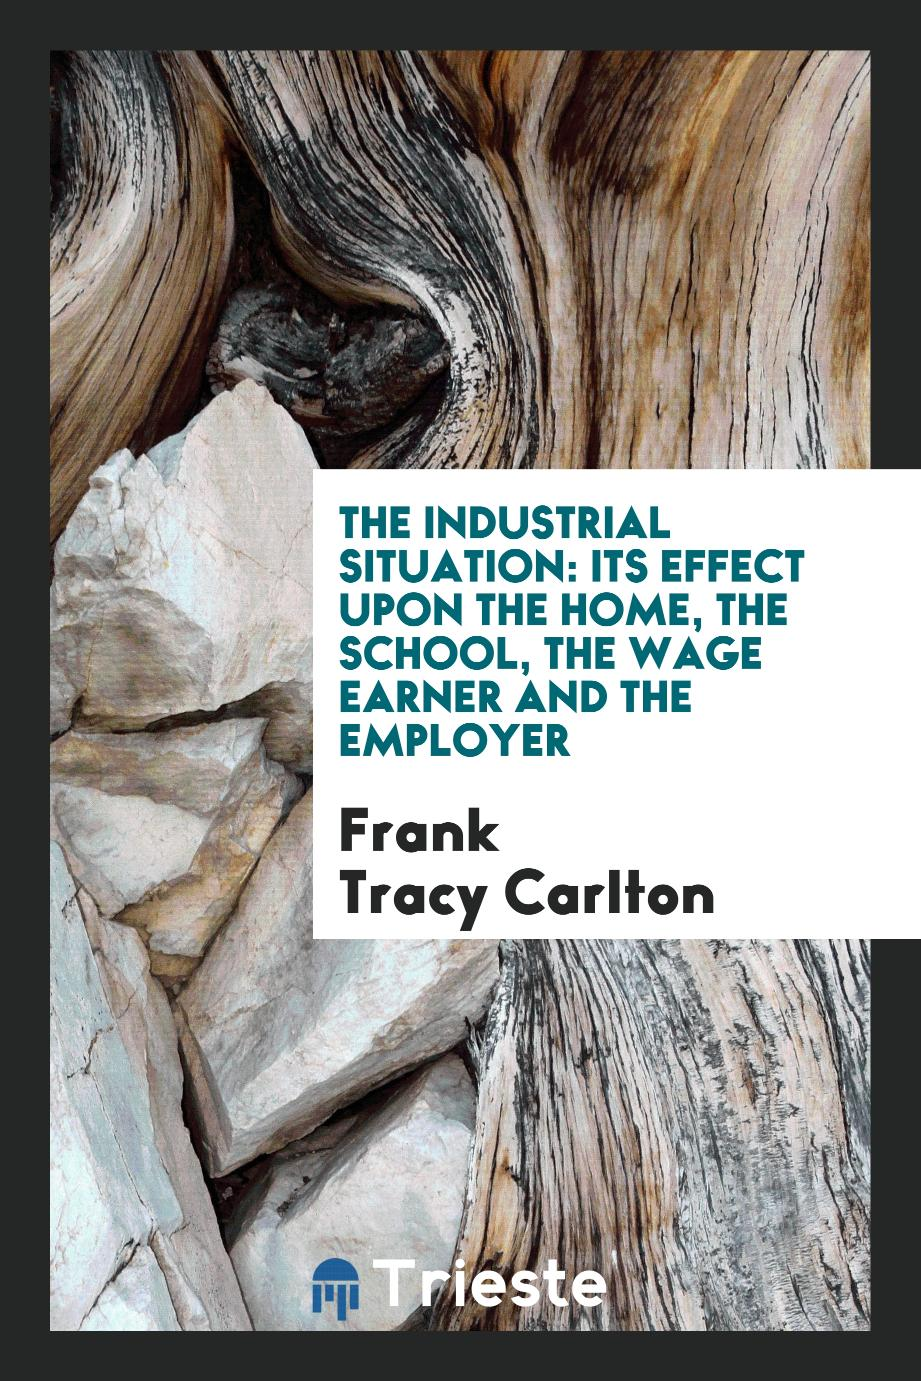 The Industrial Situation: Its Effect upon the Home, the School, the Wage Earner and the Employer